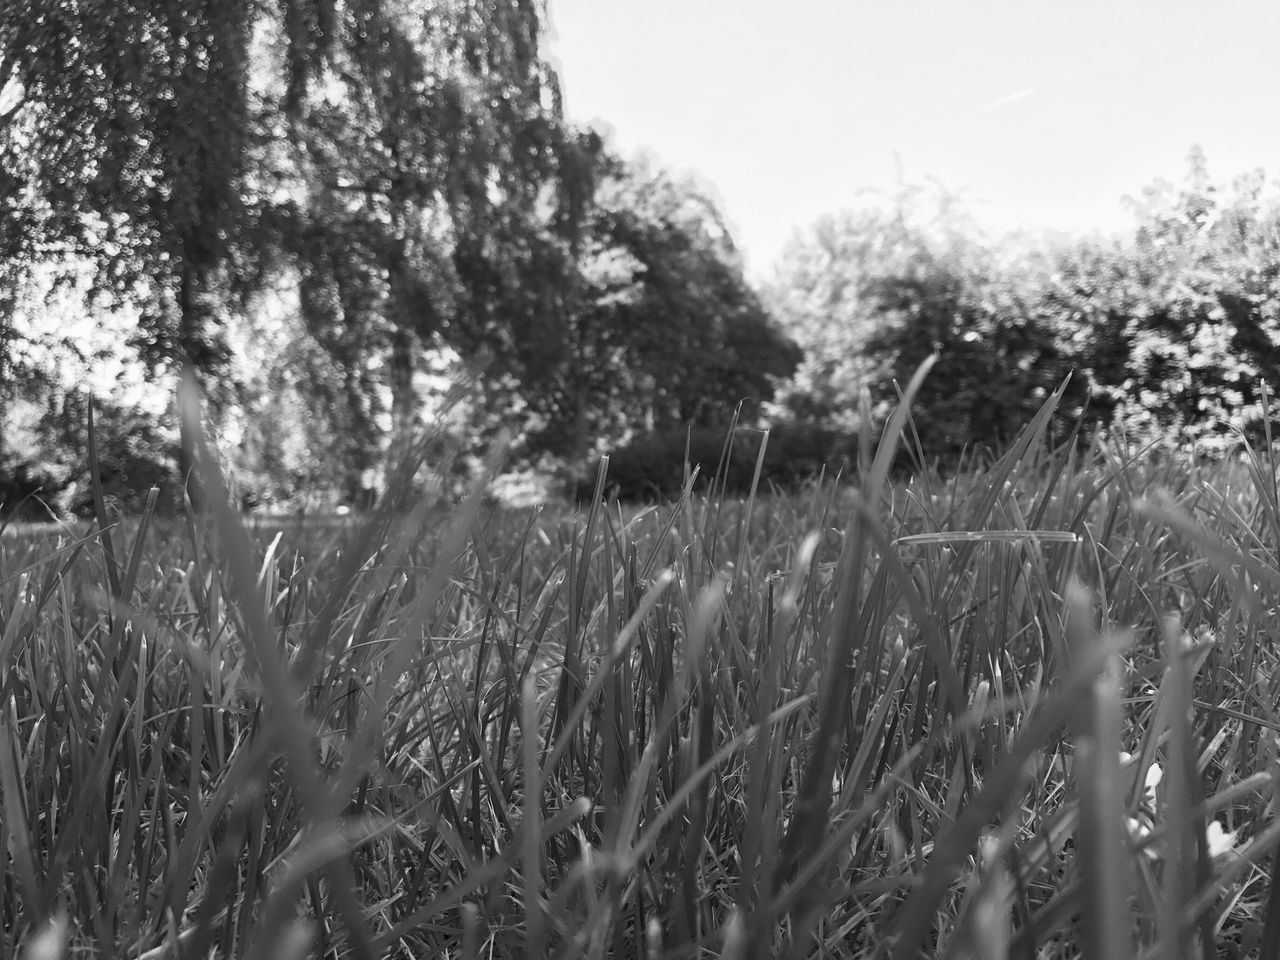 growth, nature, field, grass, plant, outdoors, no people, tree, tranquility, day, landscape, beauty in nature, close-up, sky